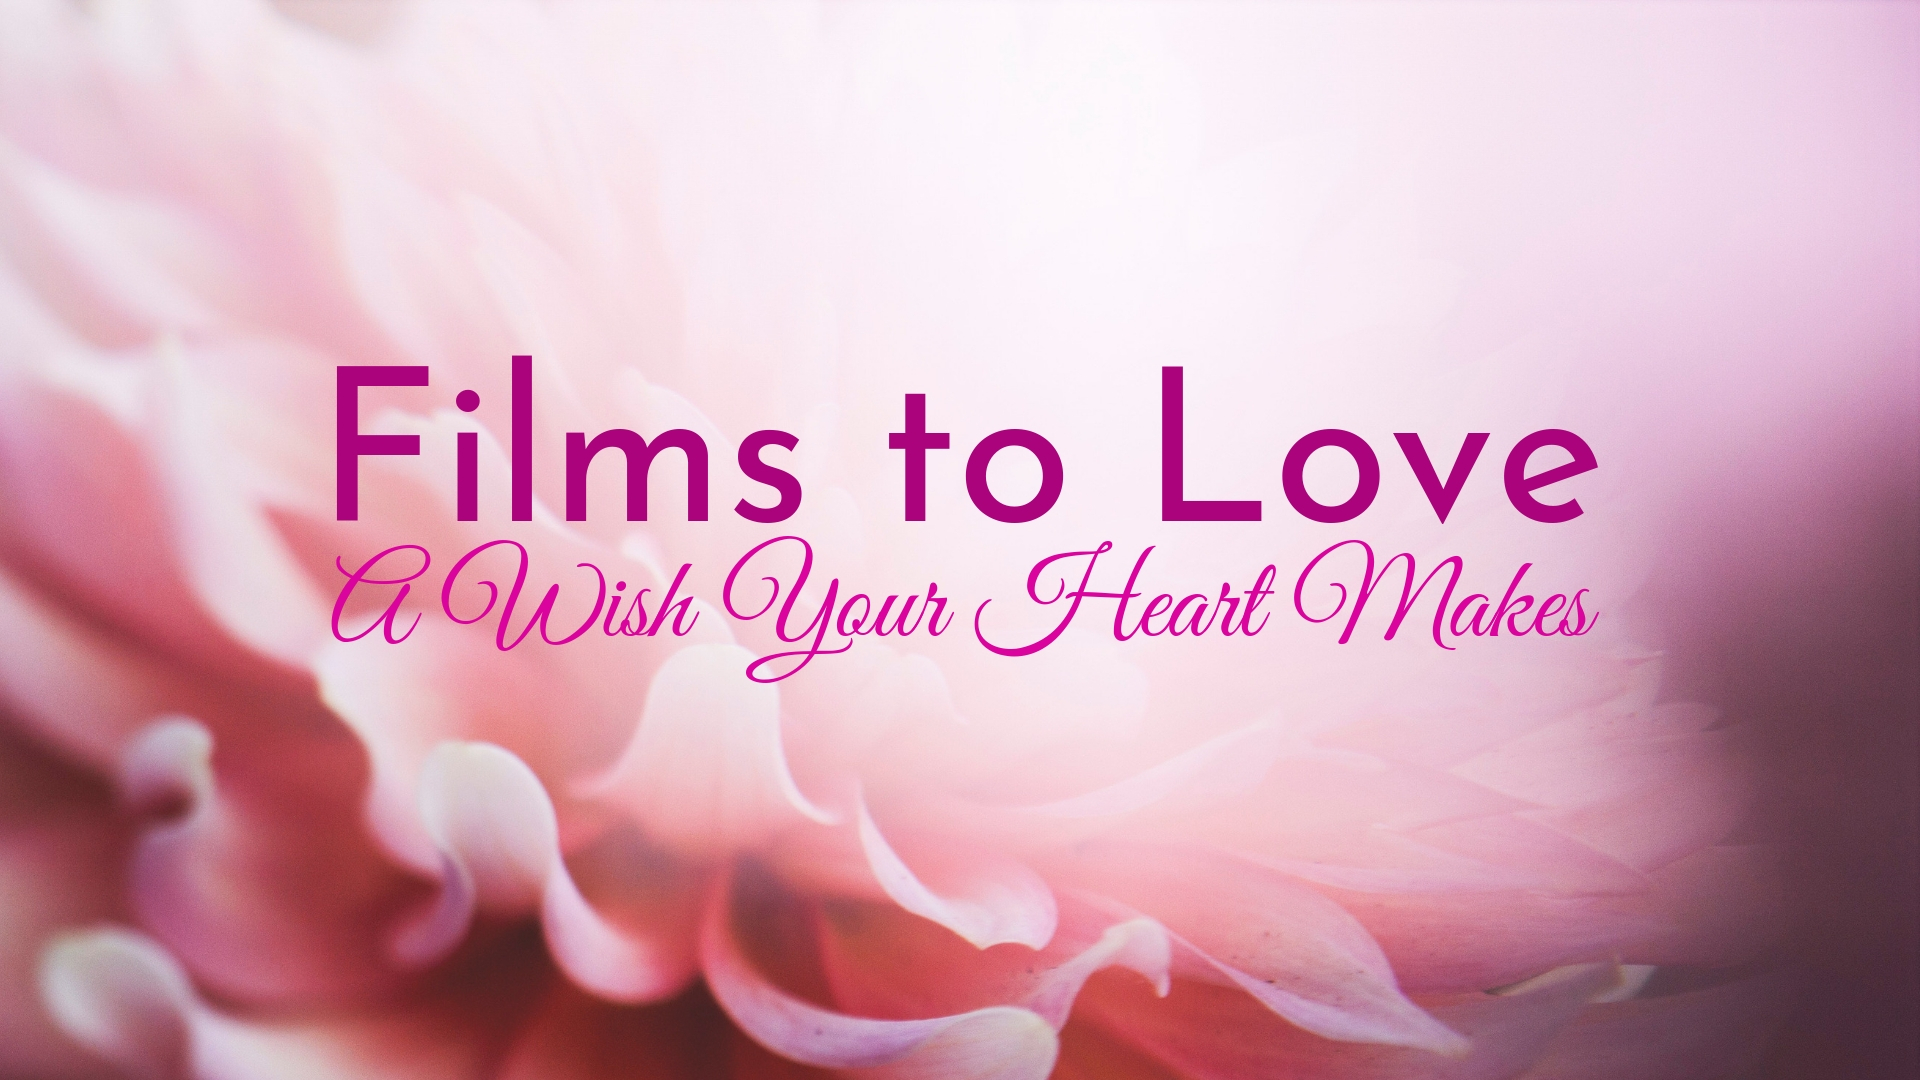 banner-films-to-love-a-wish-your-heart-makes-01.jpg